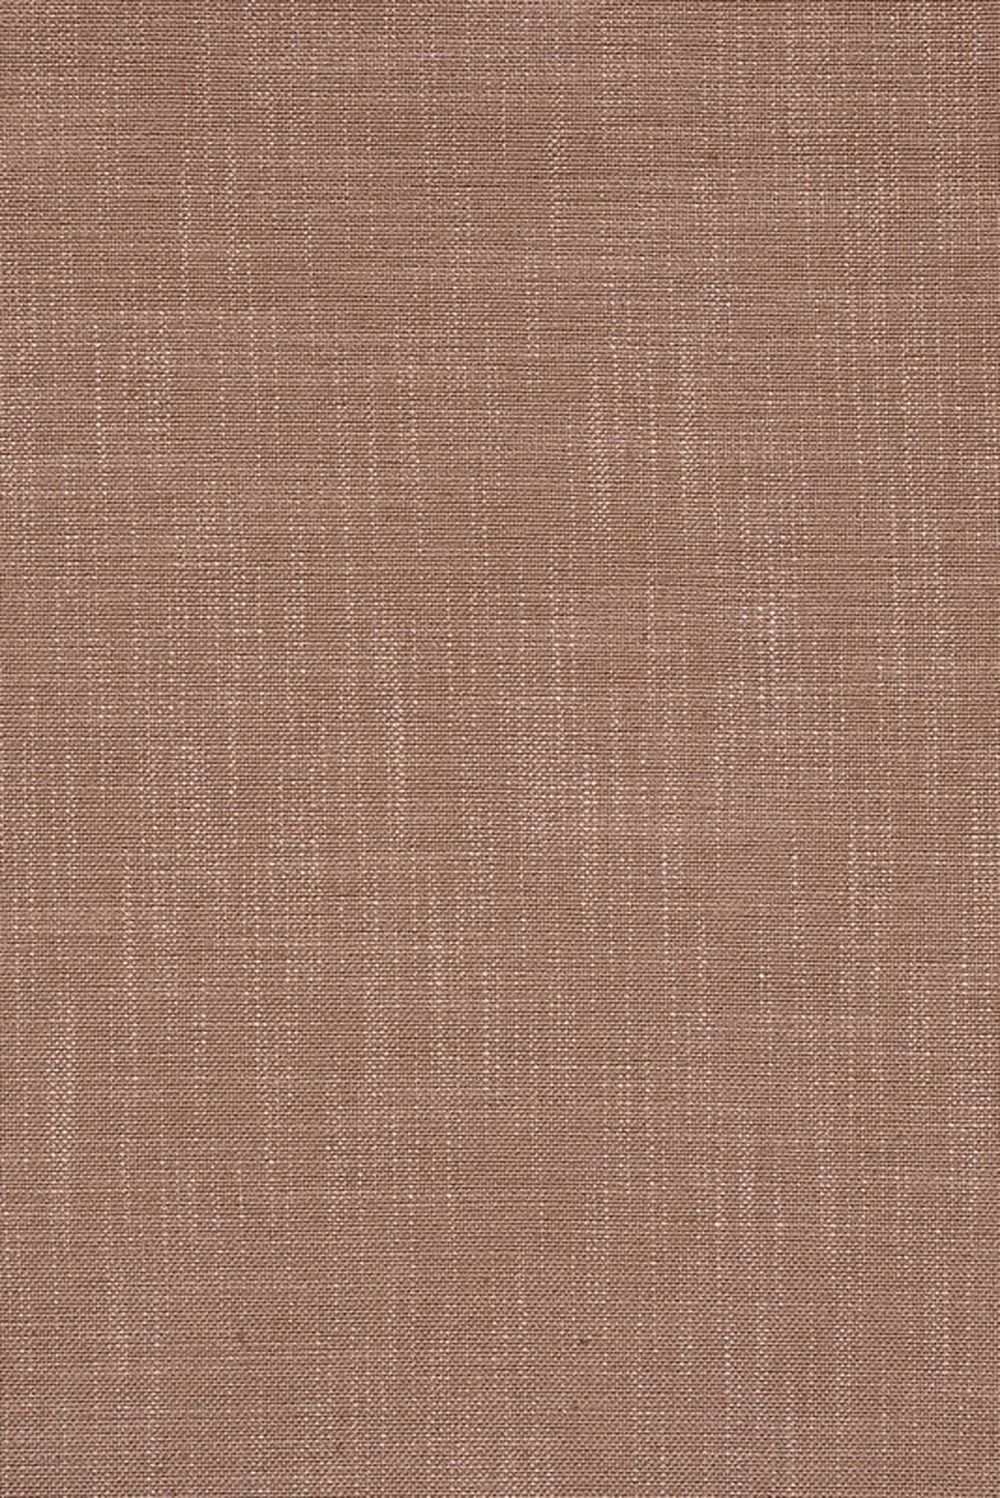 Photo of the fabric Allium Antique Rose swatch by Mokum. Use for Upholstery Heavy Duty, Accessory. Style of Plain, Texture